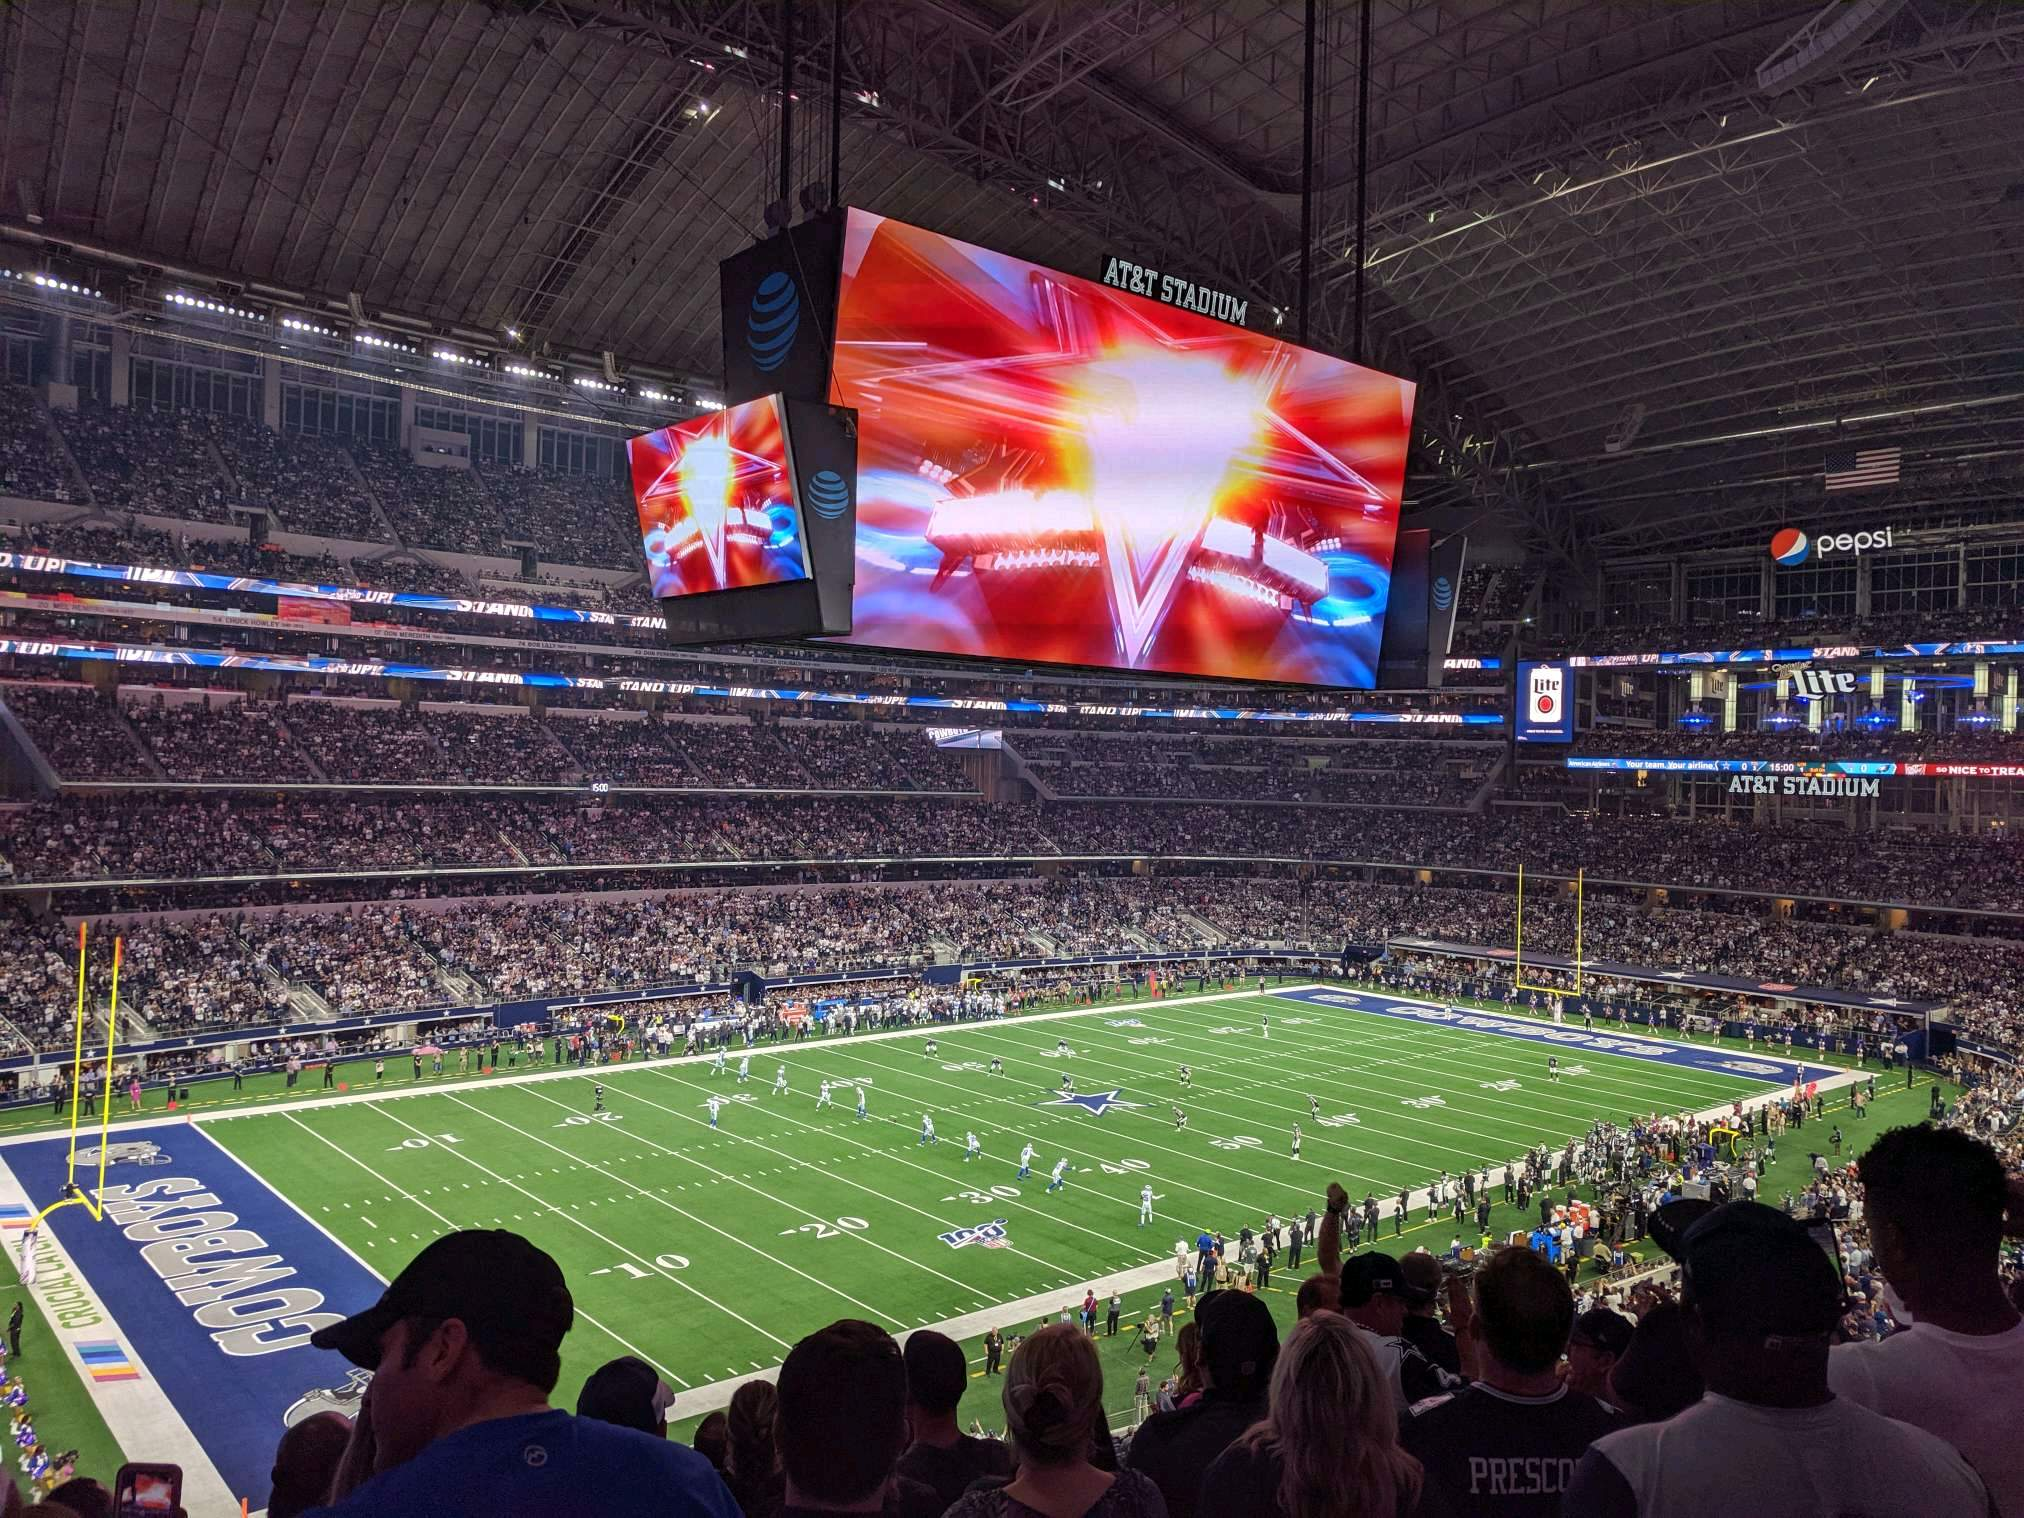 AT&T Stadium Section 342 Row 8 Seat 6